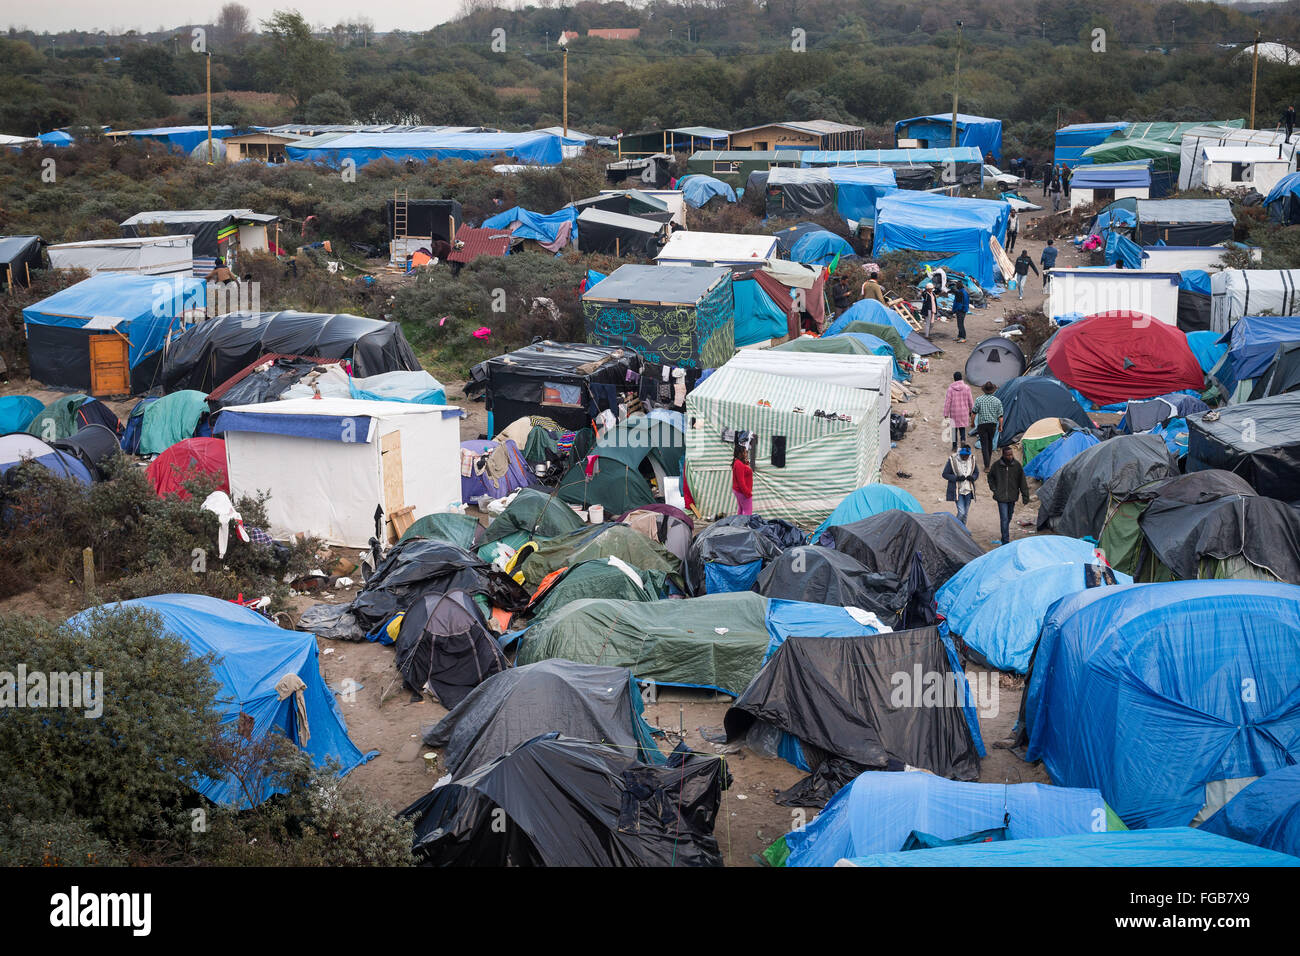 An aerial view of the Jungle refugee camp, Calais, France. People walk between the mass of tents and shelters. - Stock Image